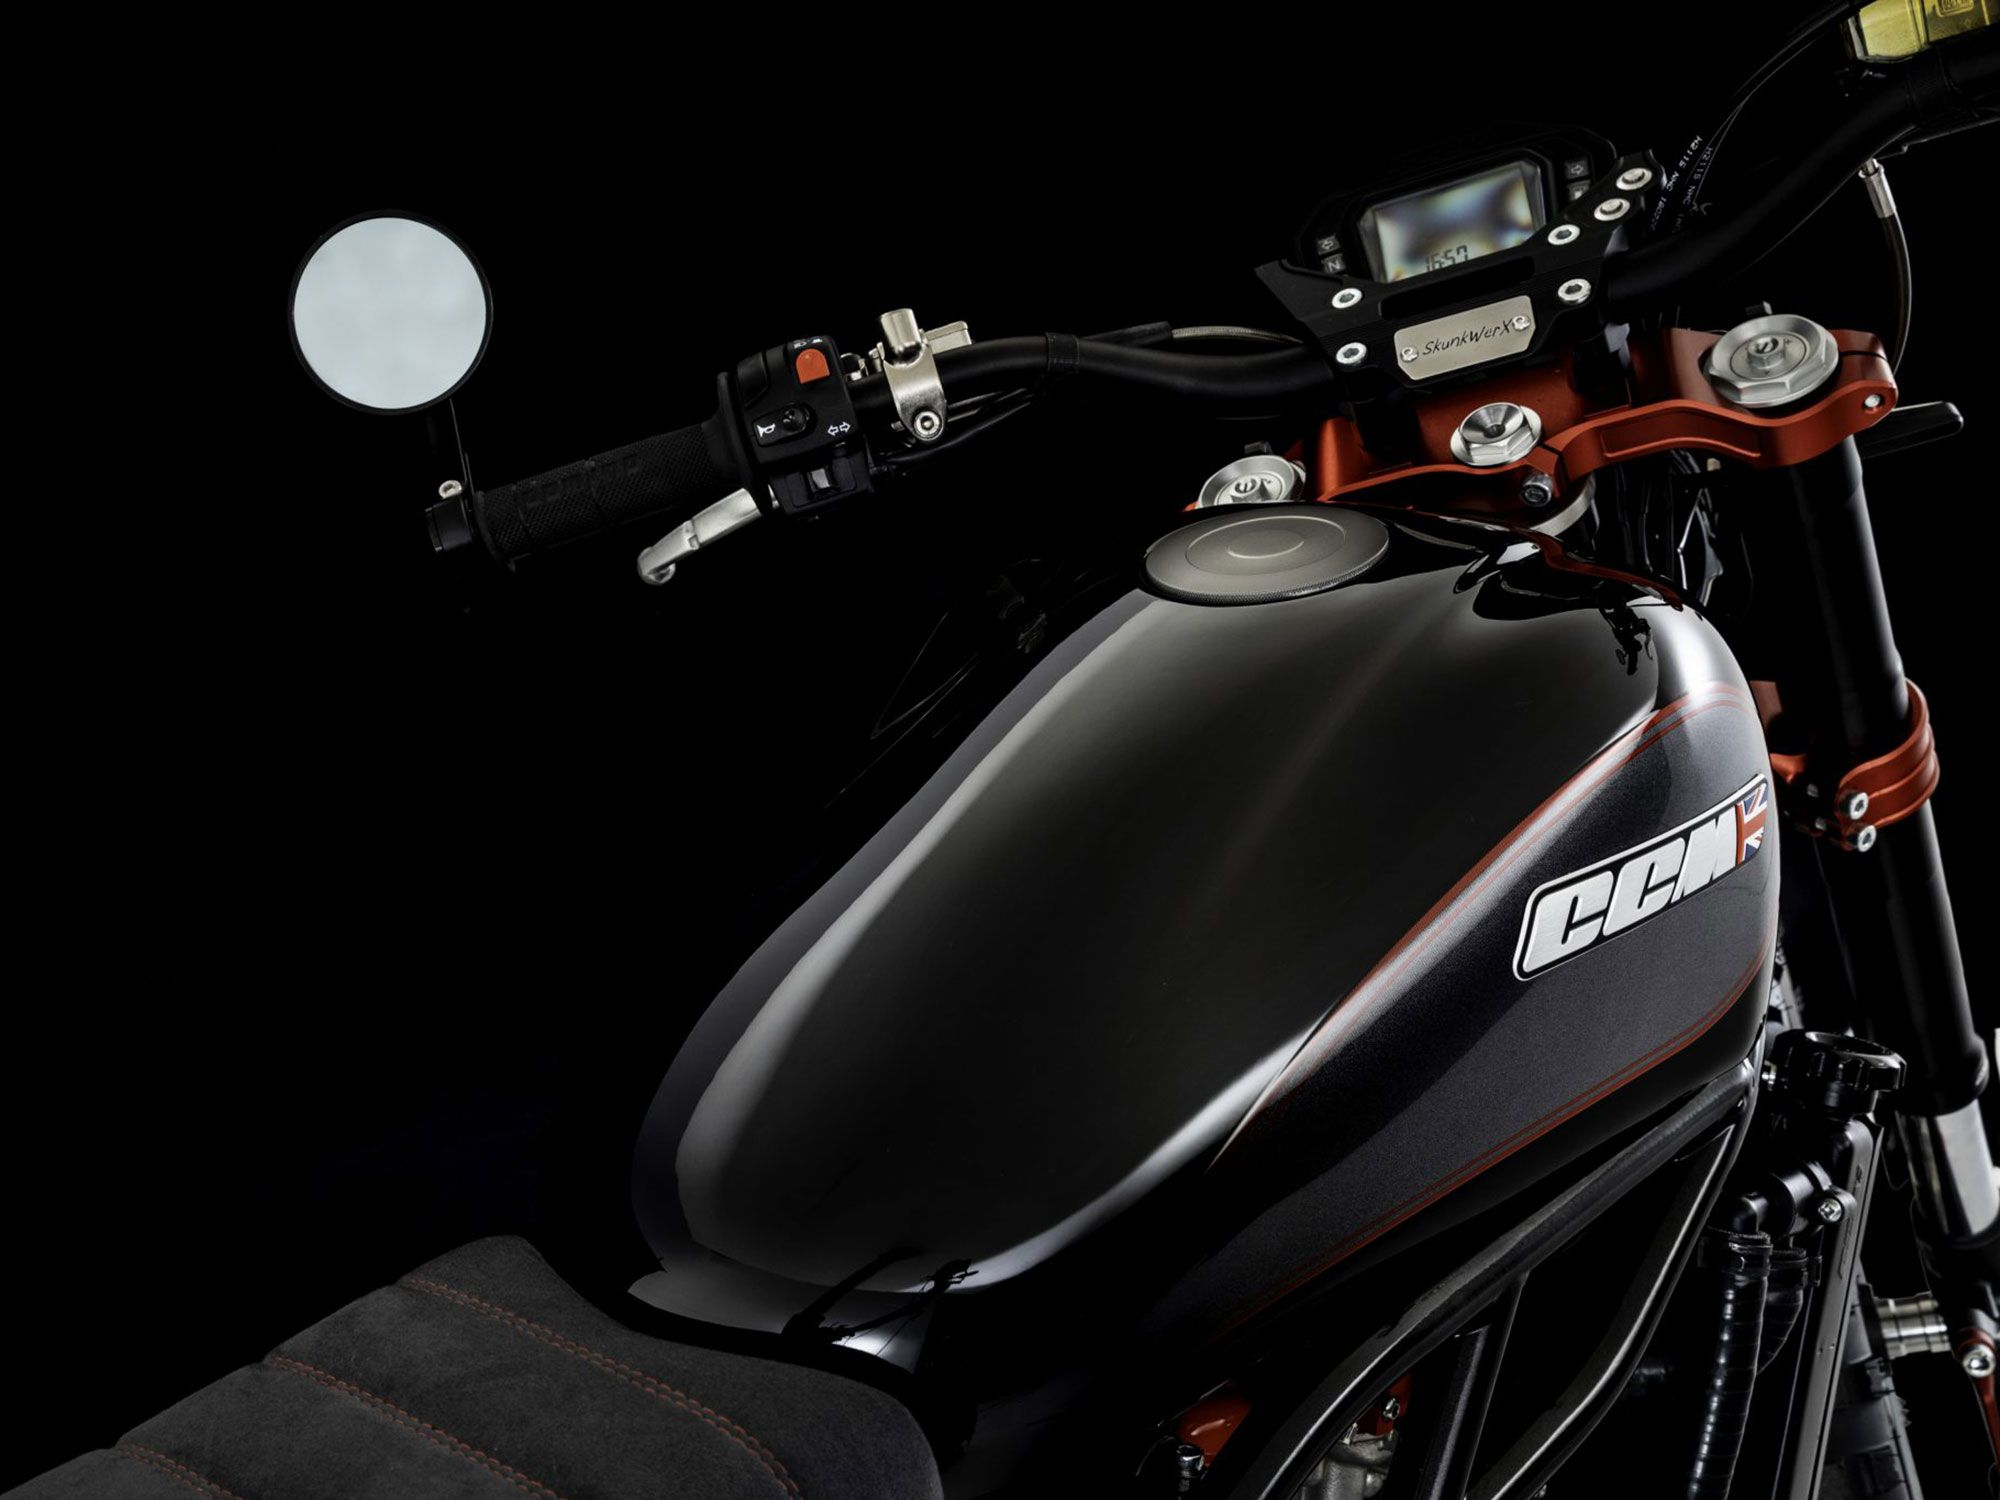 The cockpit features upswept bars and special Skunkwerx badging to denote the bike's provenance. The 3.6-gallon fuel tank keeps a similar profile to the original Scrambler version but takes on a unique black and gray paint job.